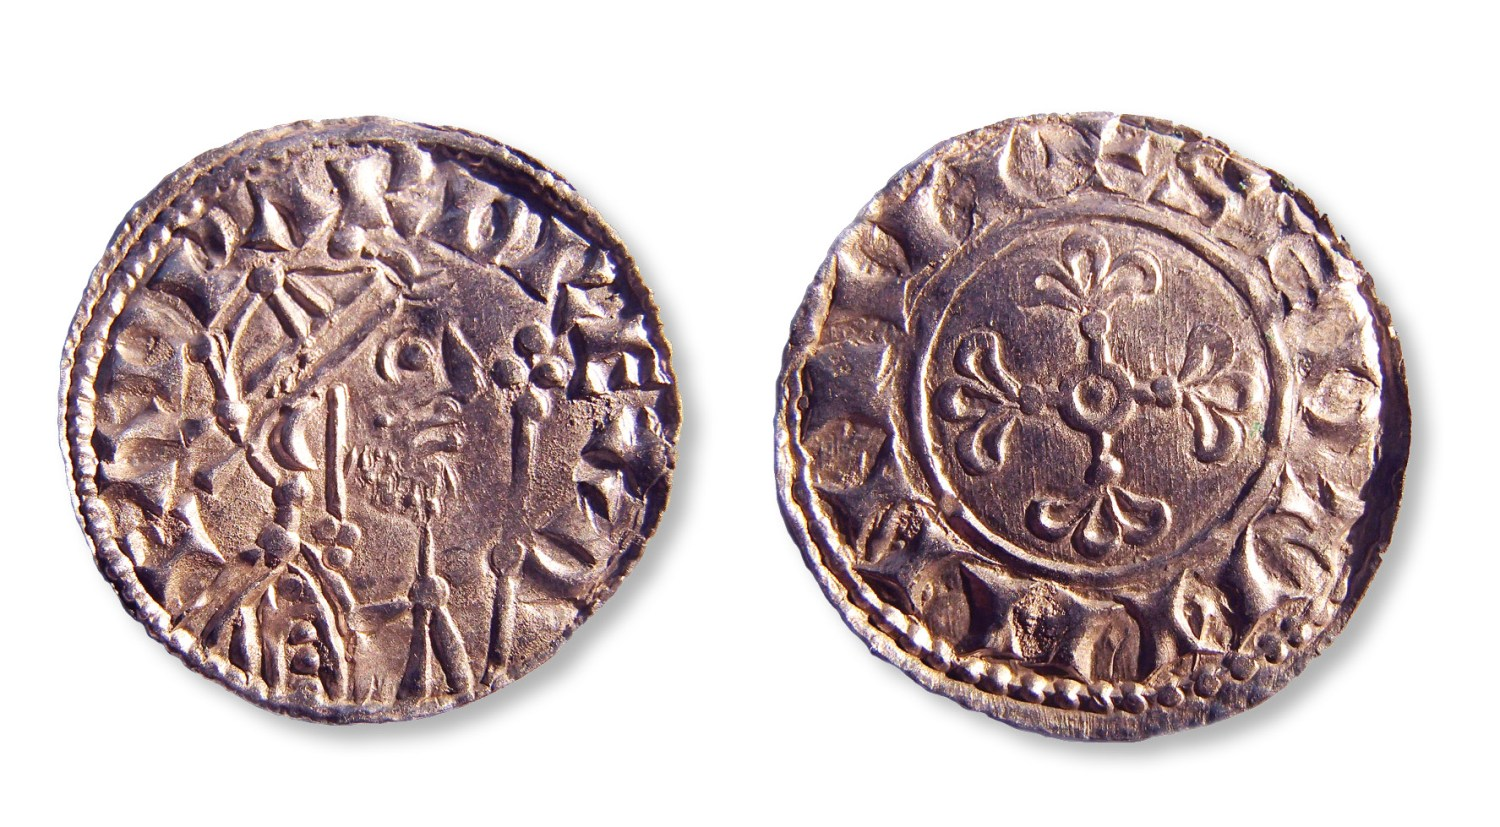 This coin is a 'mule', created using two dies from different coins one side shows a design from an issue of Edward the Confessor (right) and the other bears one of William I (far right).